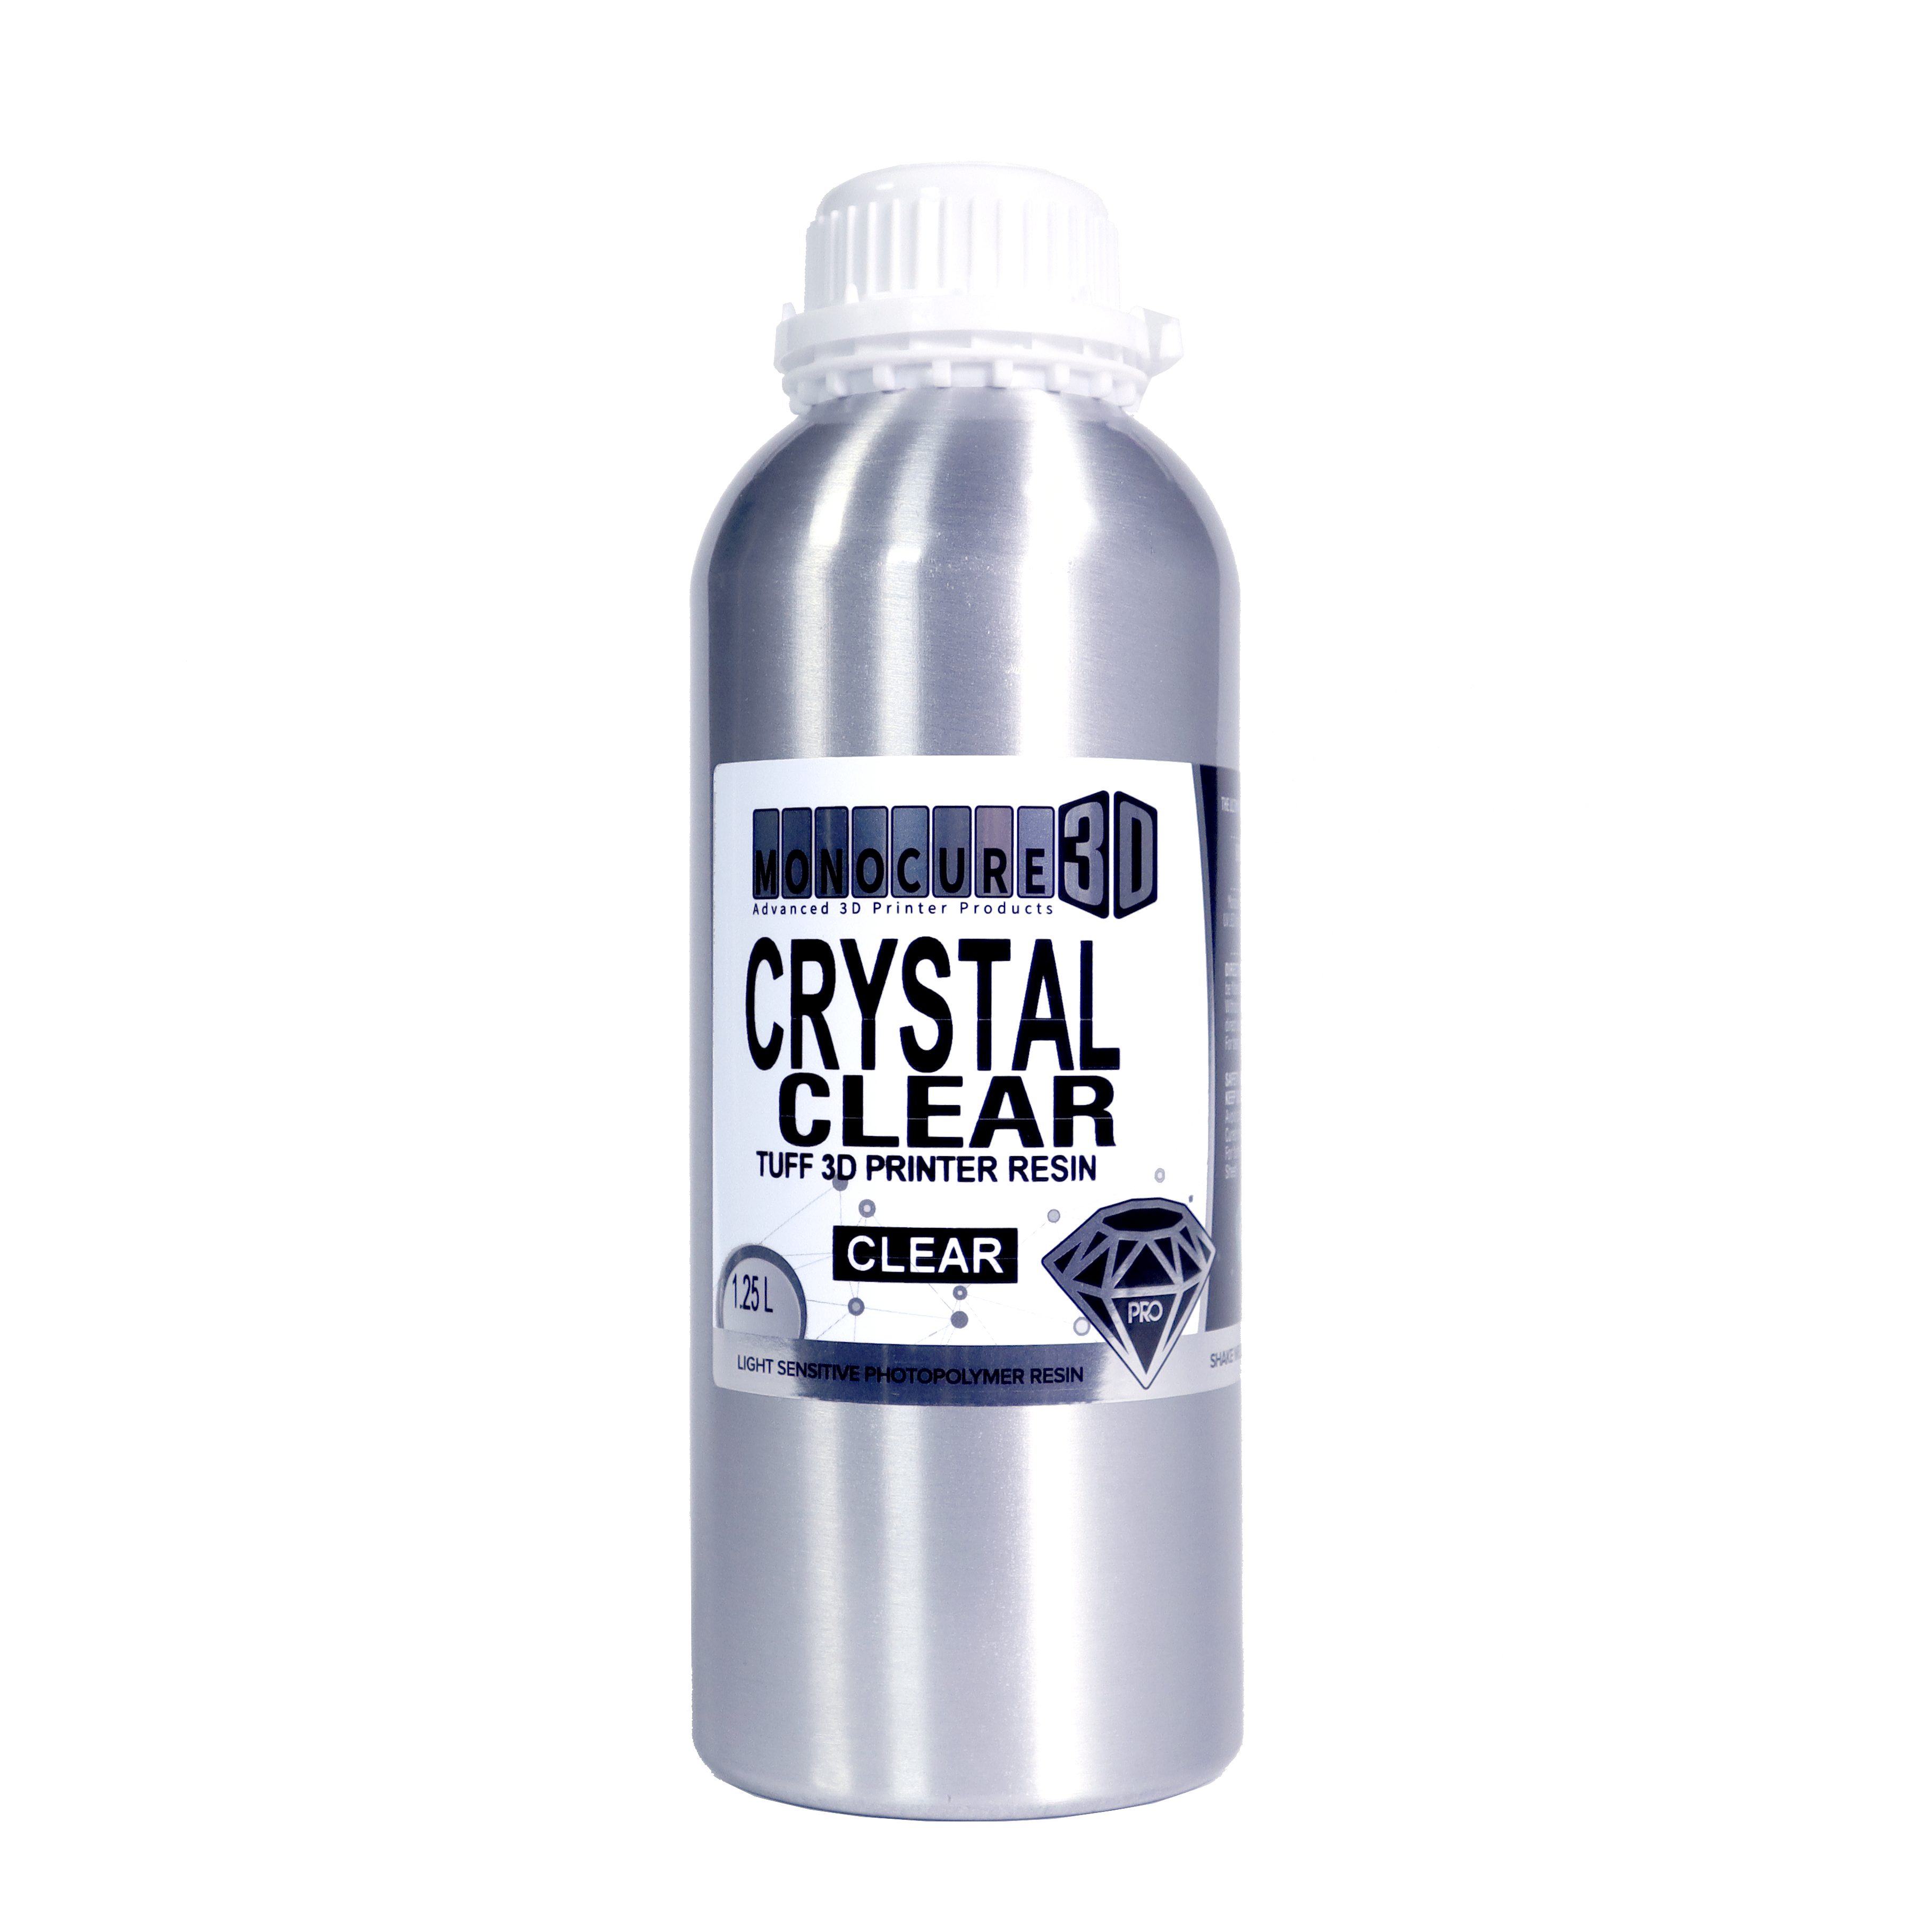 MonoCure 3D PRO Crystal Clear Resin